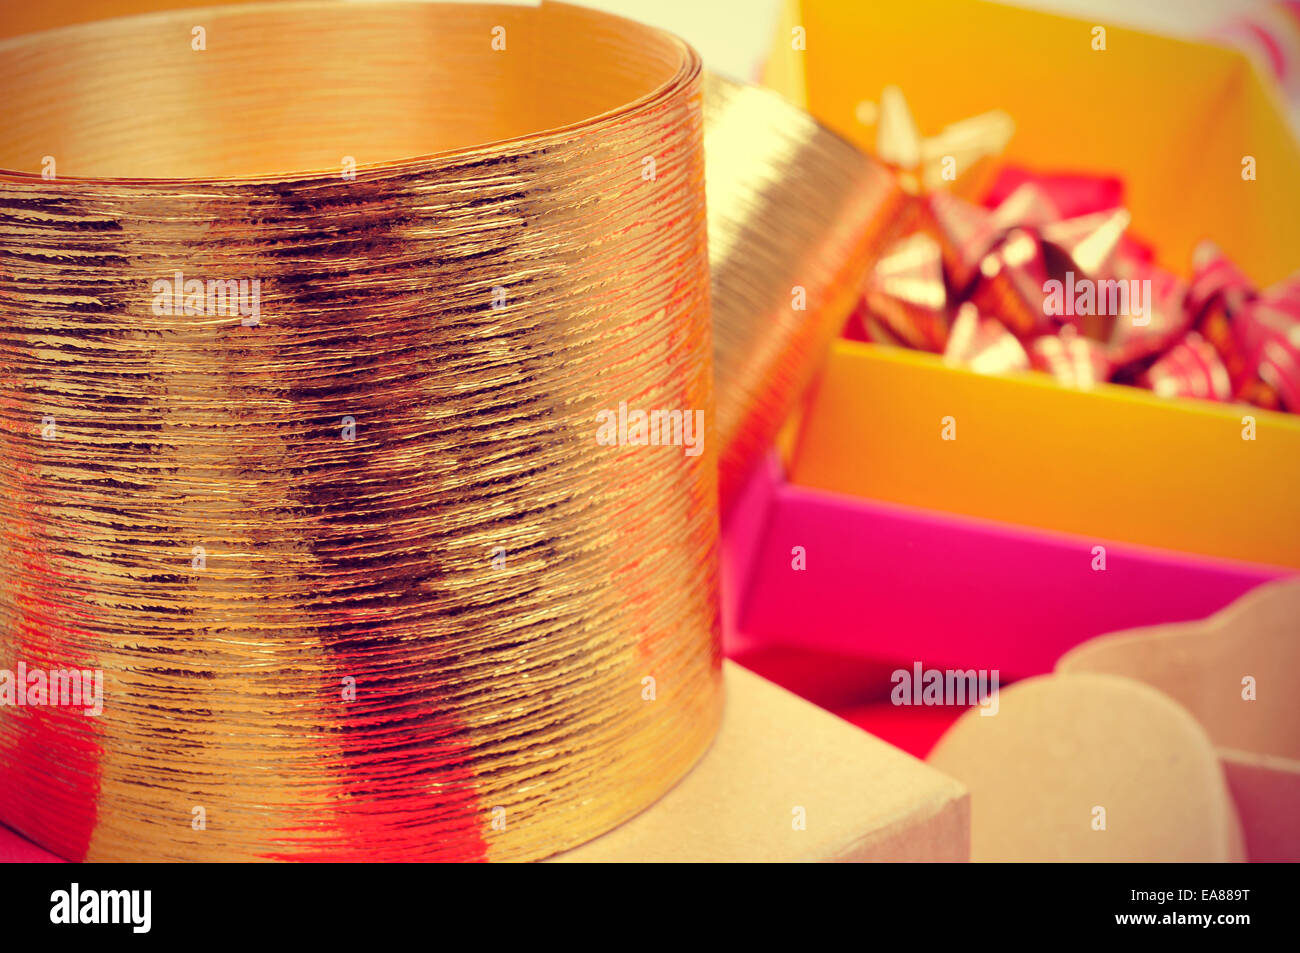 golden ribbon, boxes and ribbon bows of different colors to prepare gifts, with a retro effect - Stock Image